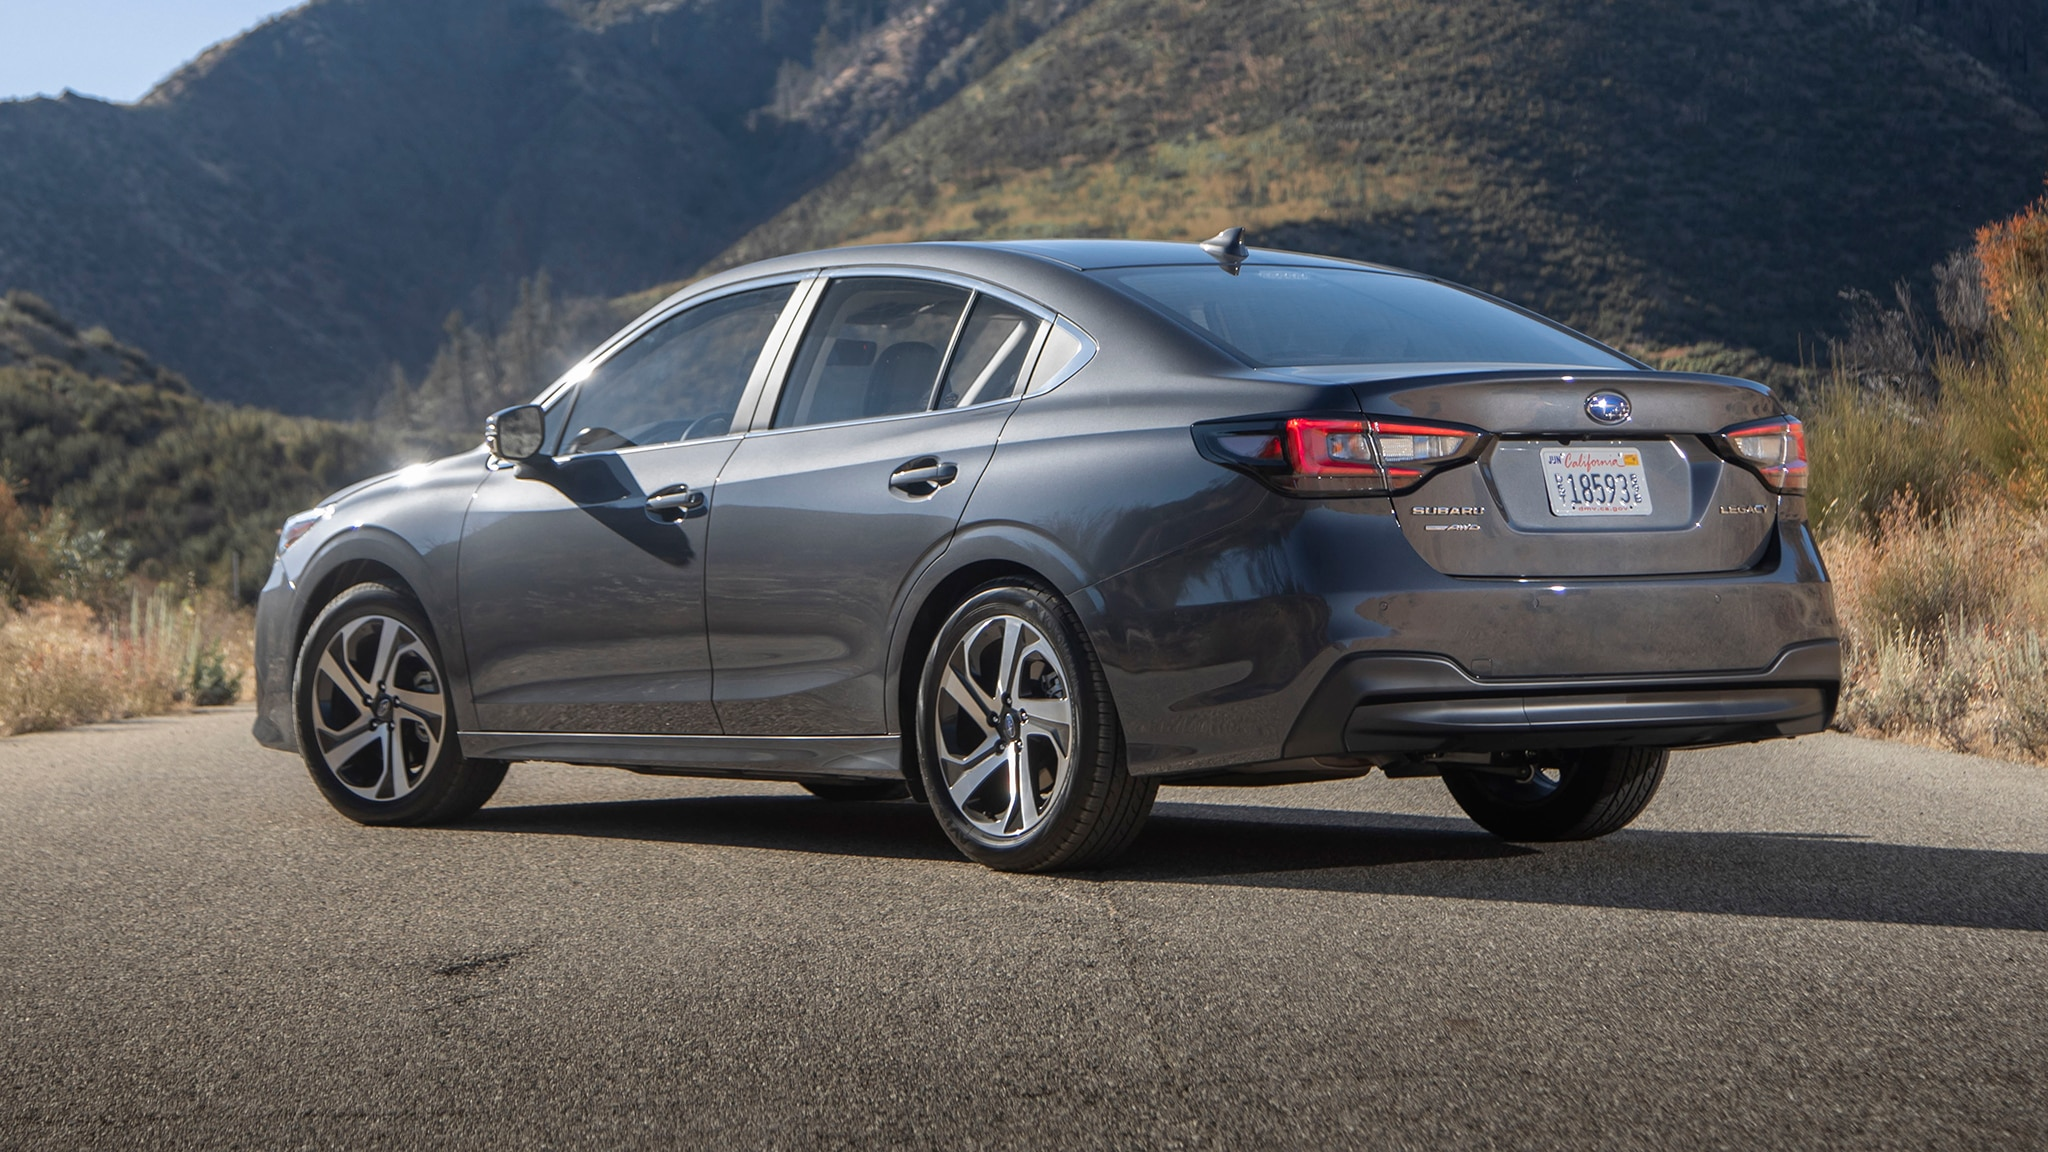 2020 Subaru Legacy First Drive Review: As Good as the ...